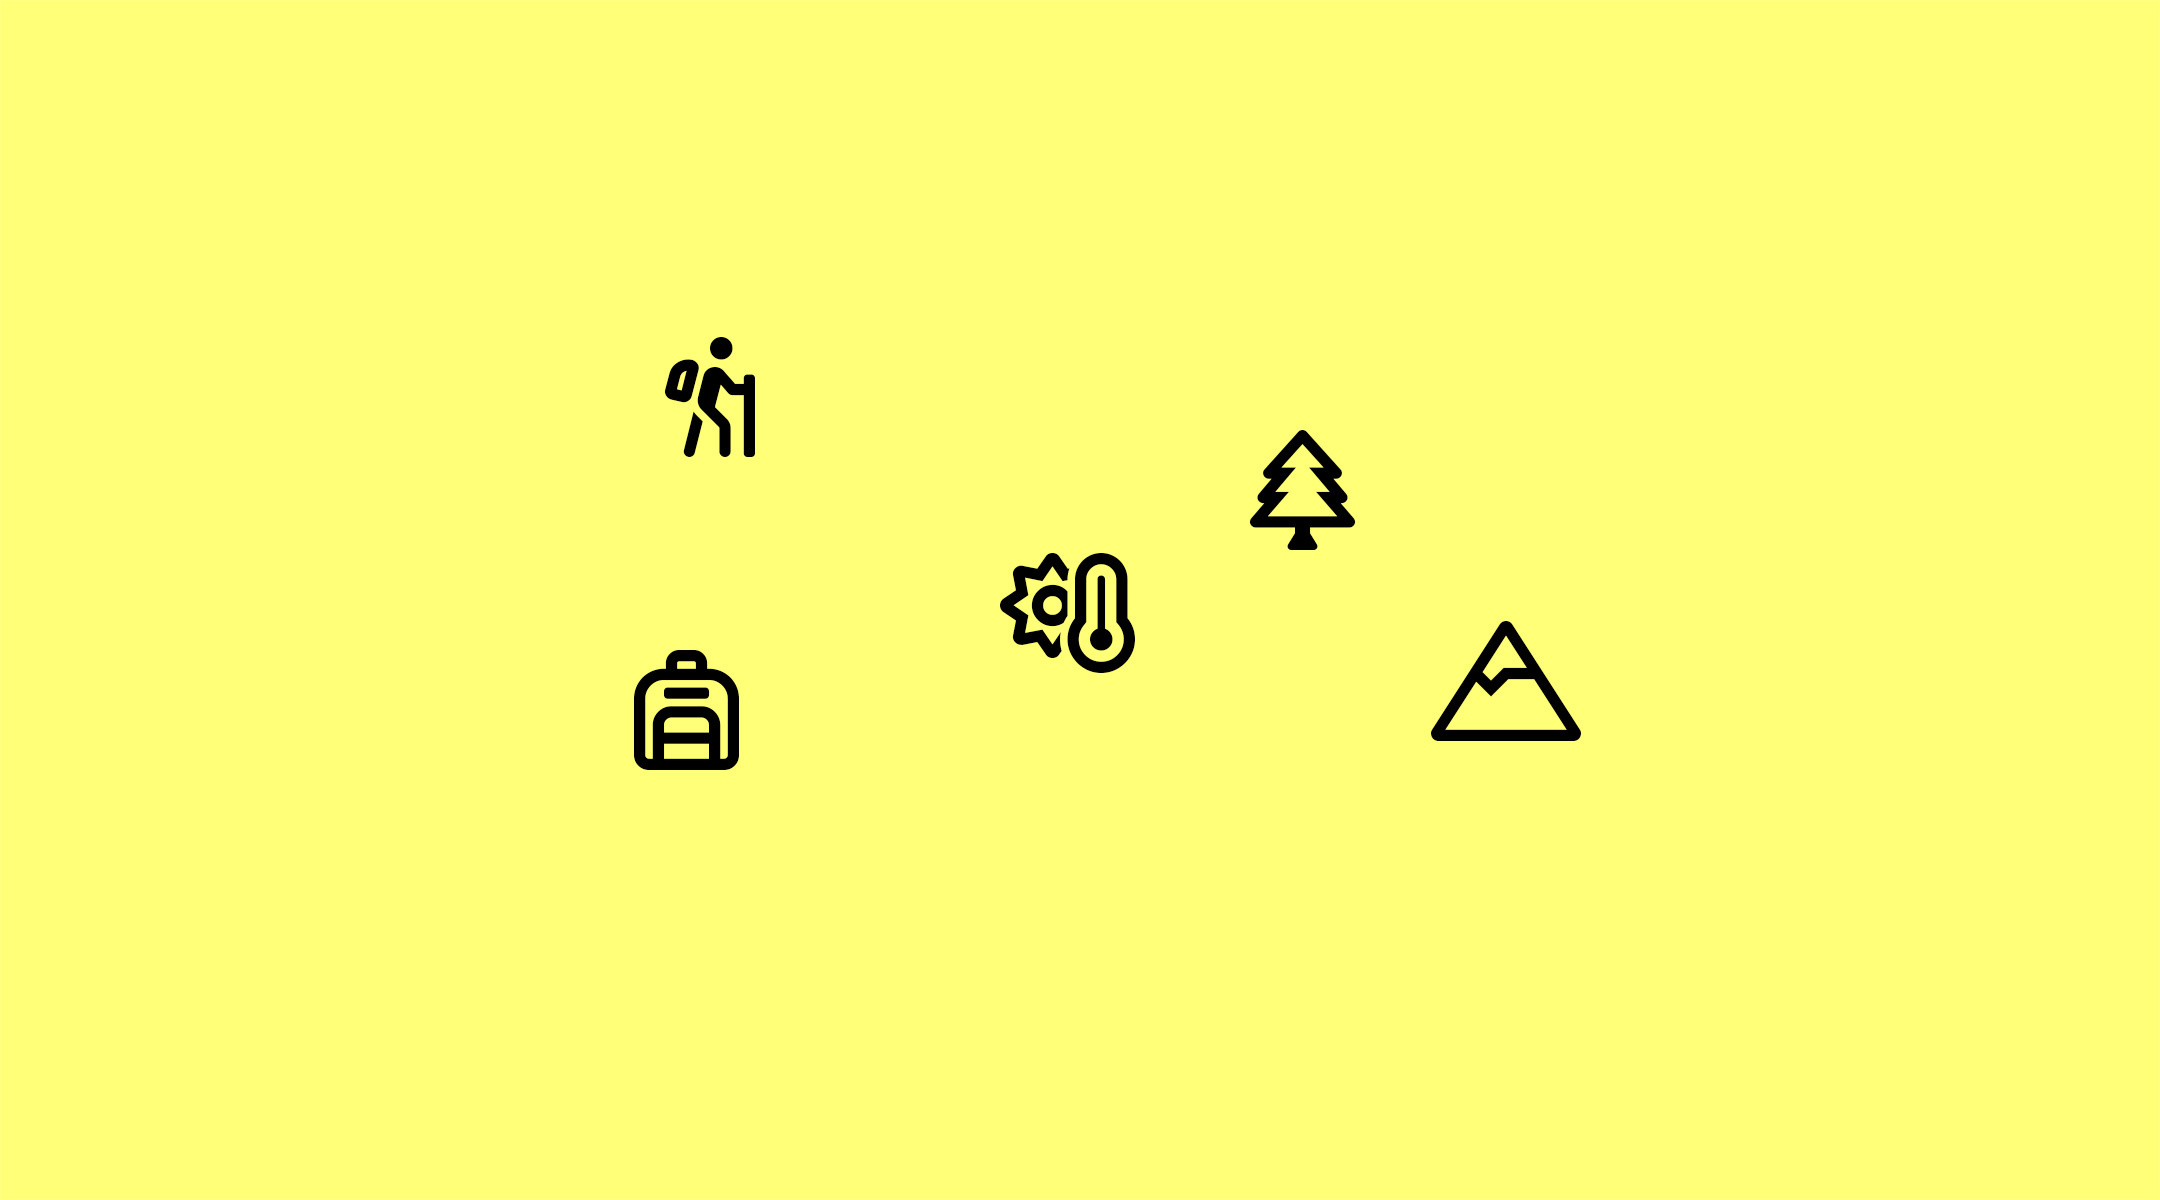 symbols showing touristic activities on yellow background